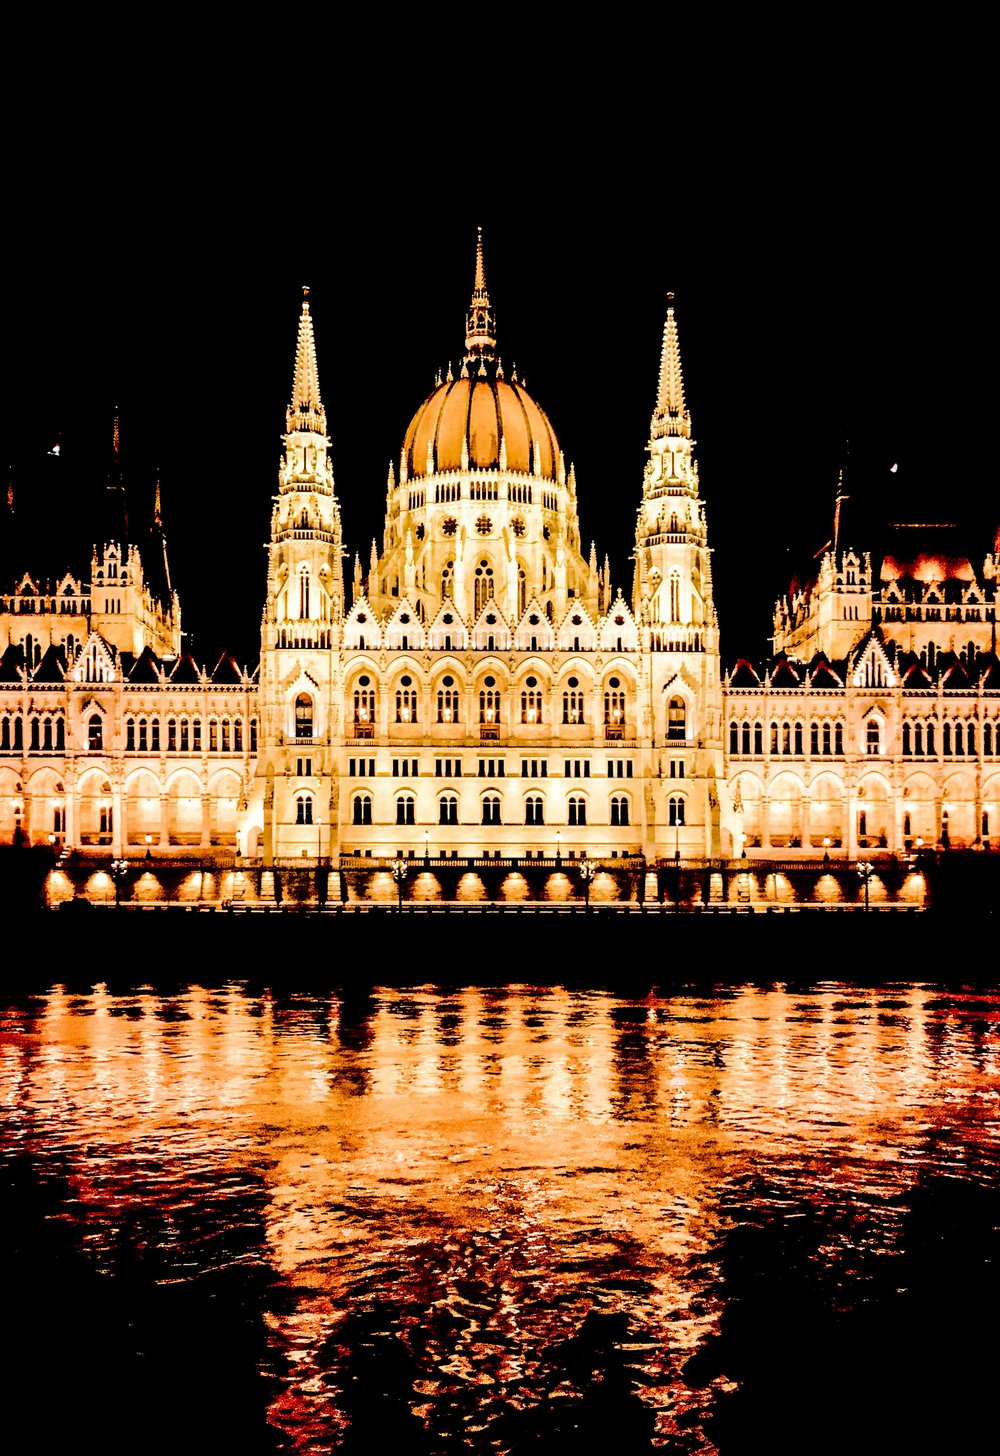 Parliament_Budapest_JuliaMattis_Photo10-min.jpg